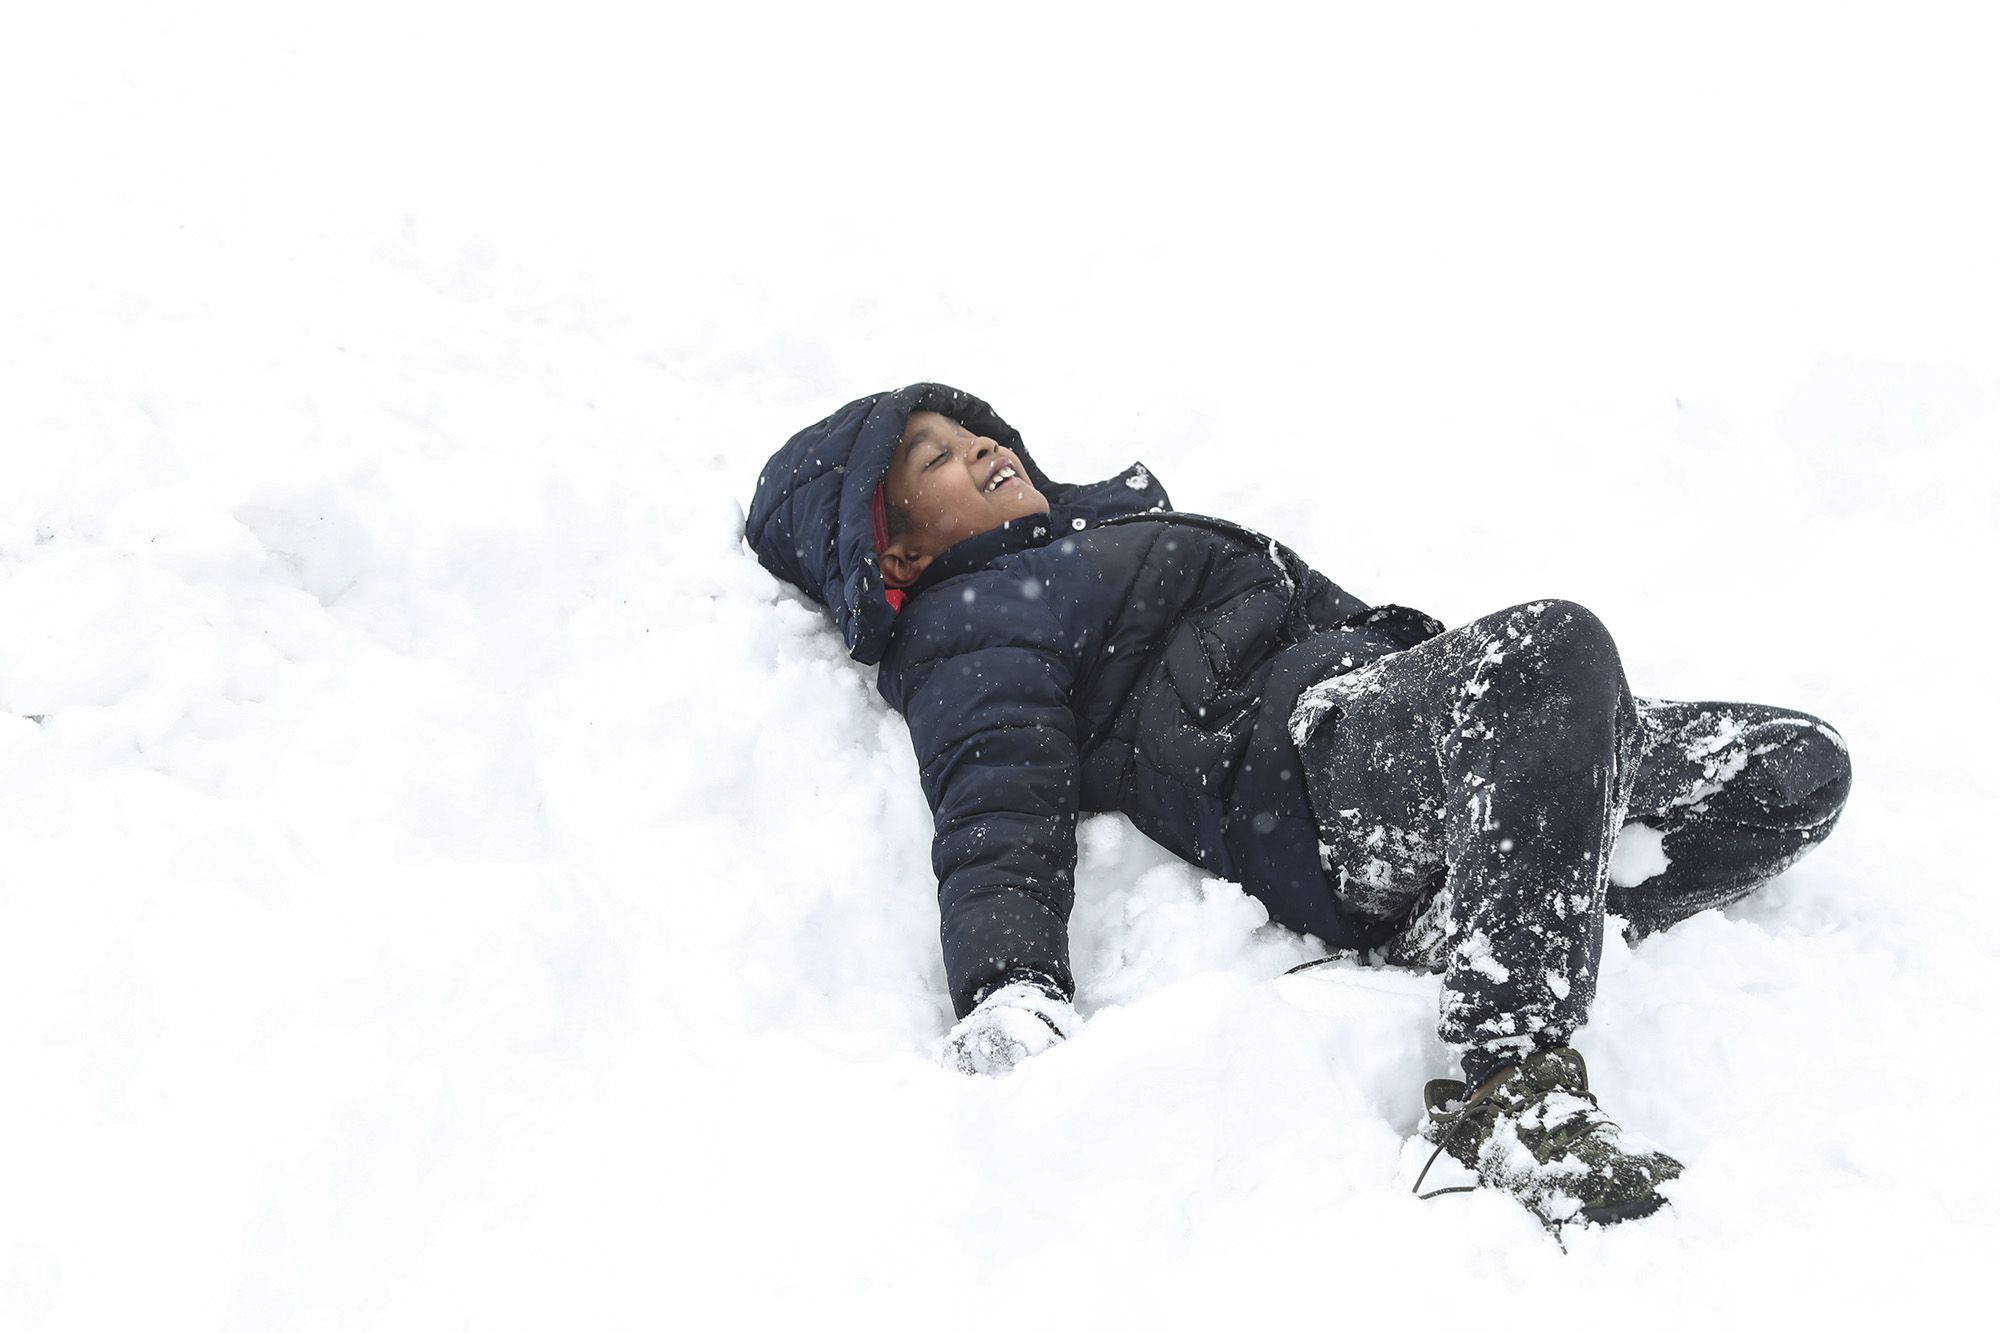 Derrick Stevenson III tries to make a snow angel on Sunday, Jan. 31, 2021, in front of his family's home in Joliet, Ill. Nearly a foot of snow covered Will County overnight, resulting in fun for some and challenges for others.